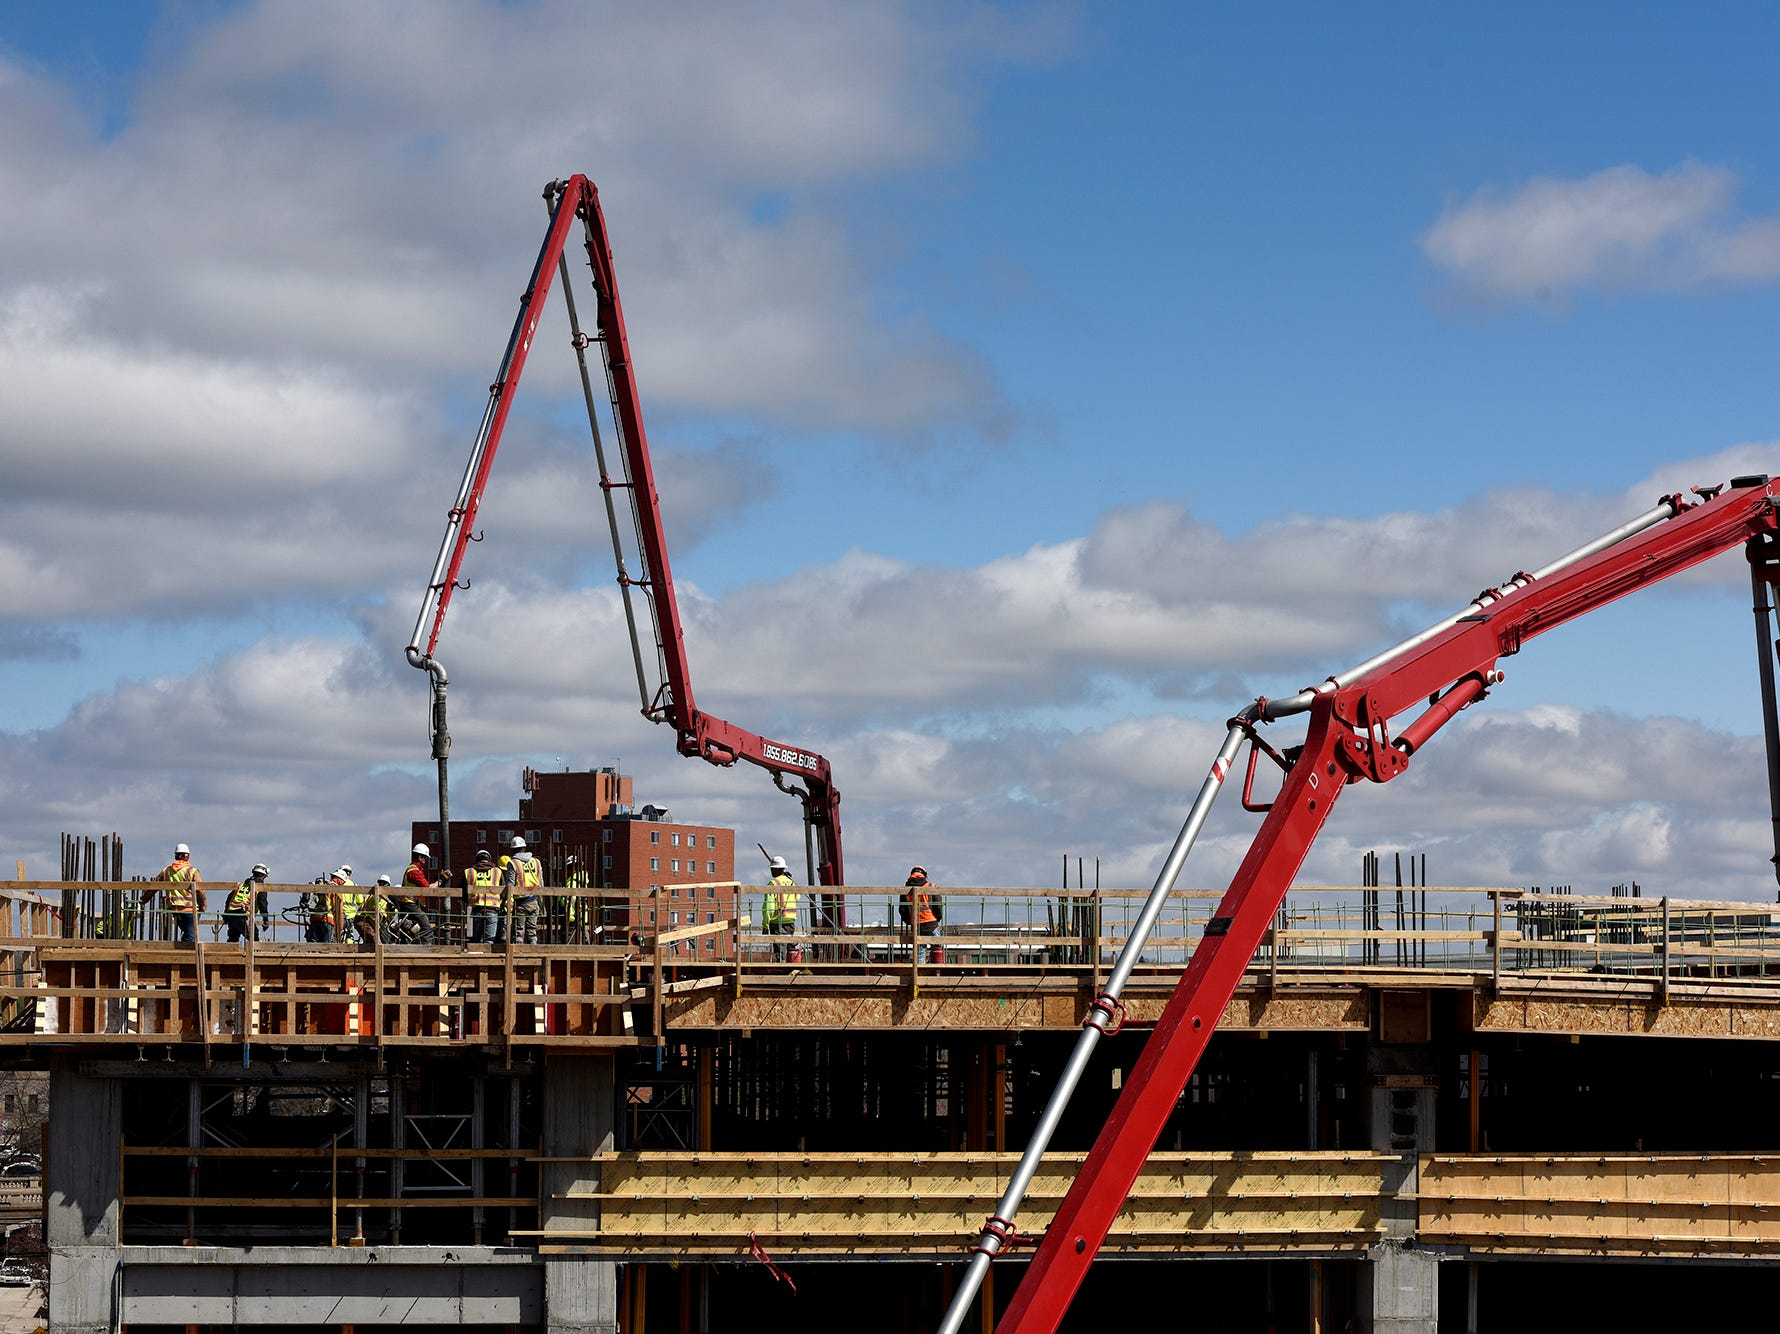 Construction crews pour concrete on one of the top levels of the new parking ramp at the Village on the River development in downtown Sioux Falls on Thursday, May 2.